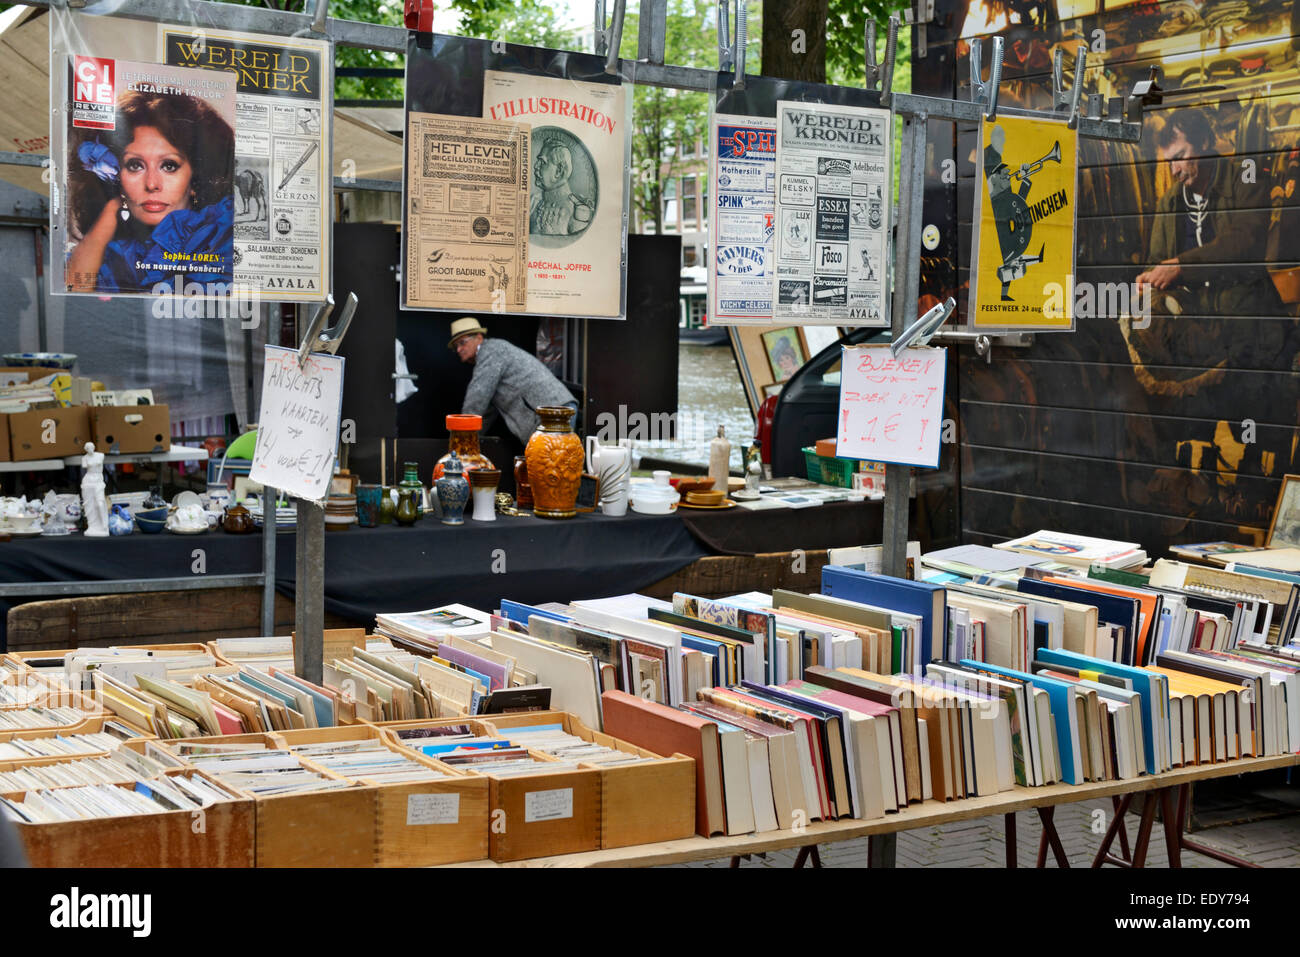 Bookstall on Waterlooplein Flea Market, Amsterdam, North Holland, Netherlands, Europe - Stock Image